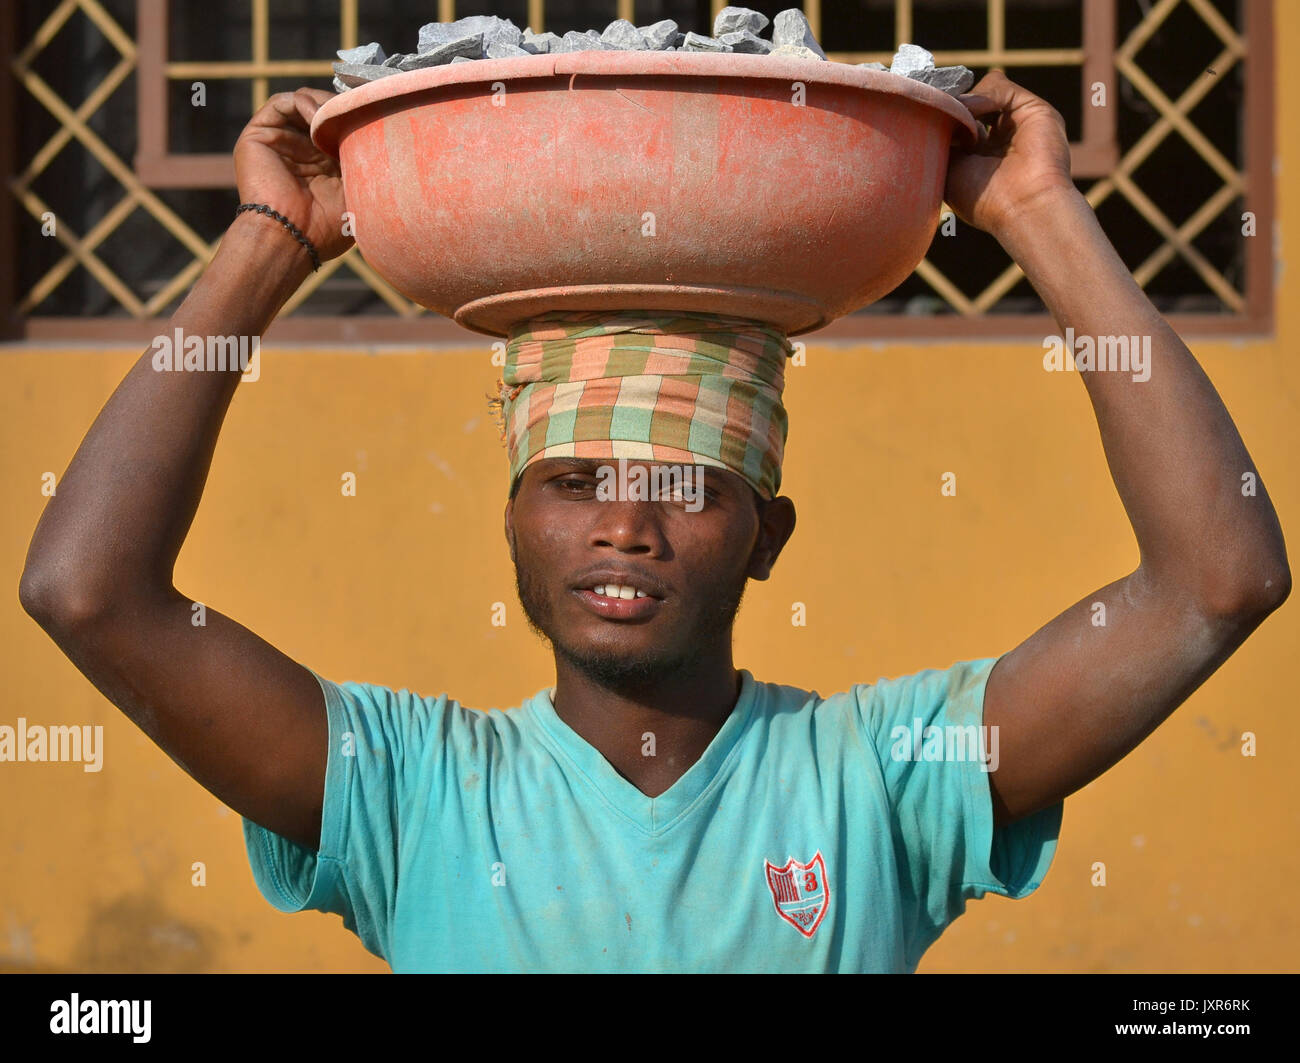 Closeup street portrait of a young Indian Adivasi tribal man, carrying on his head a plastic bowl with crushed rocks - Stock Image